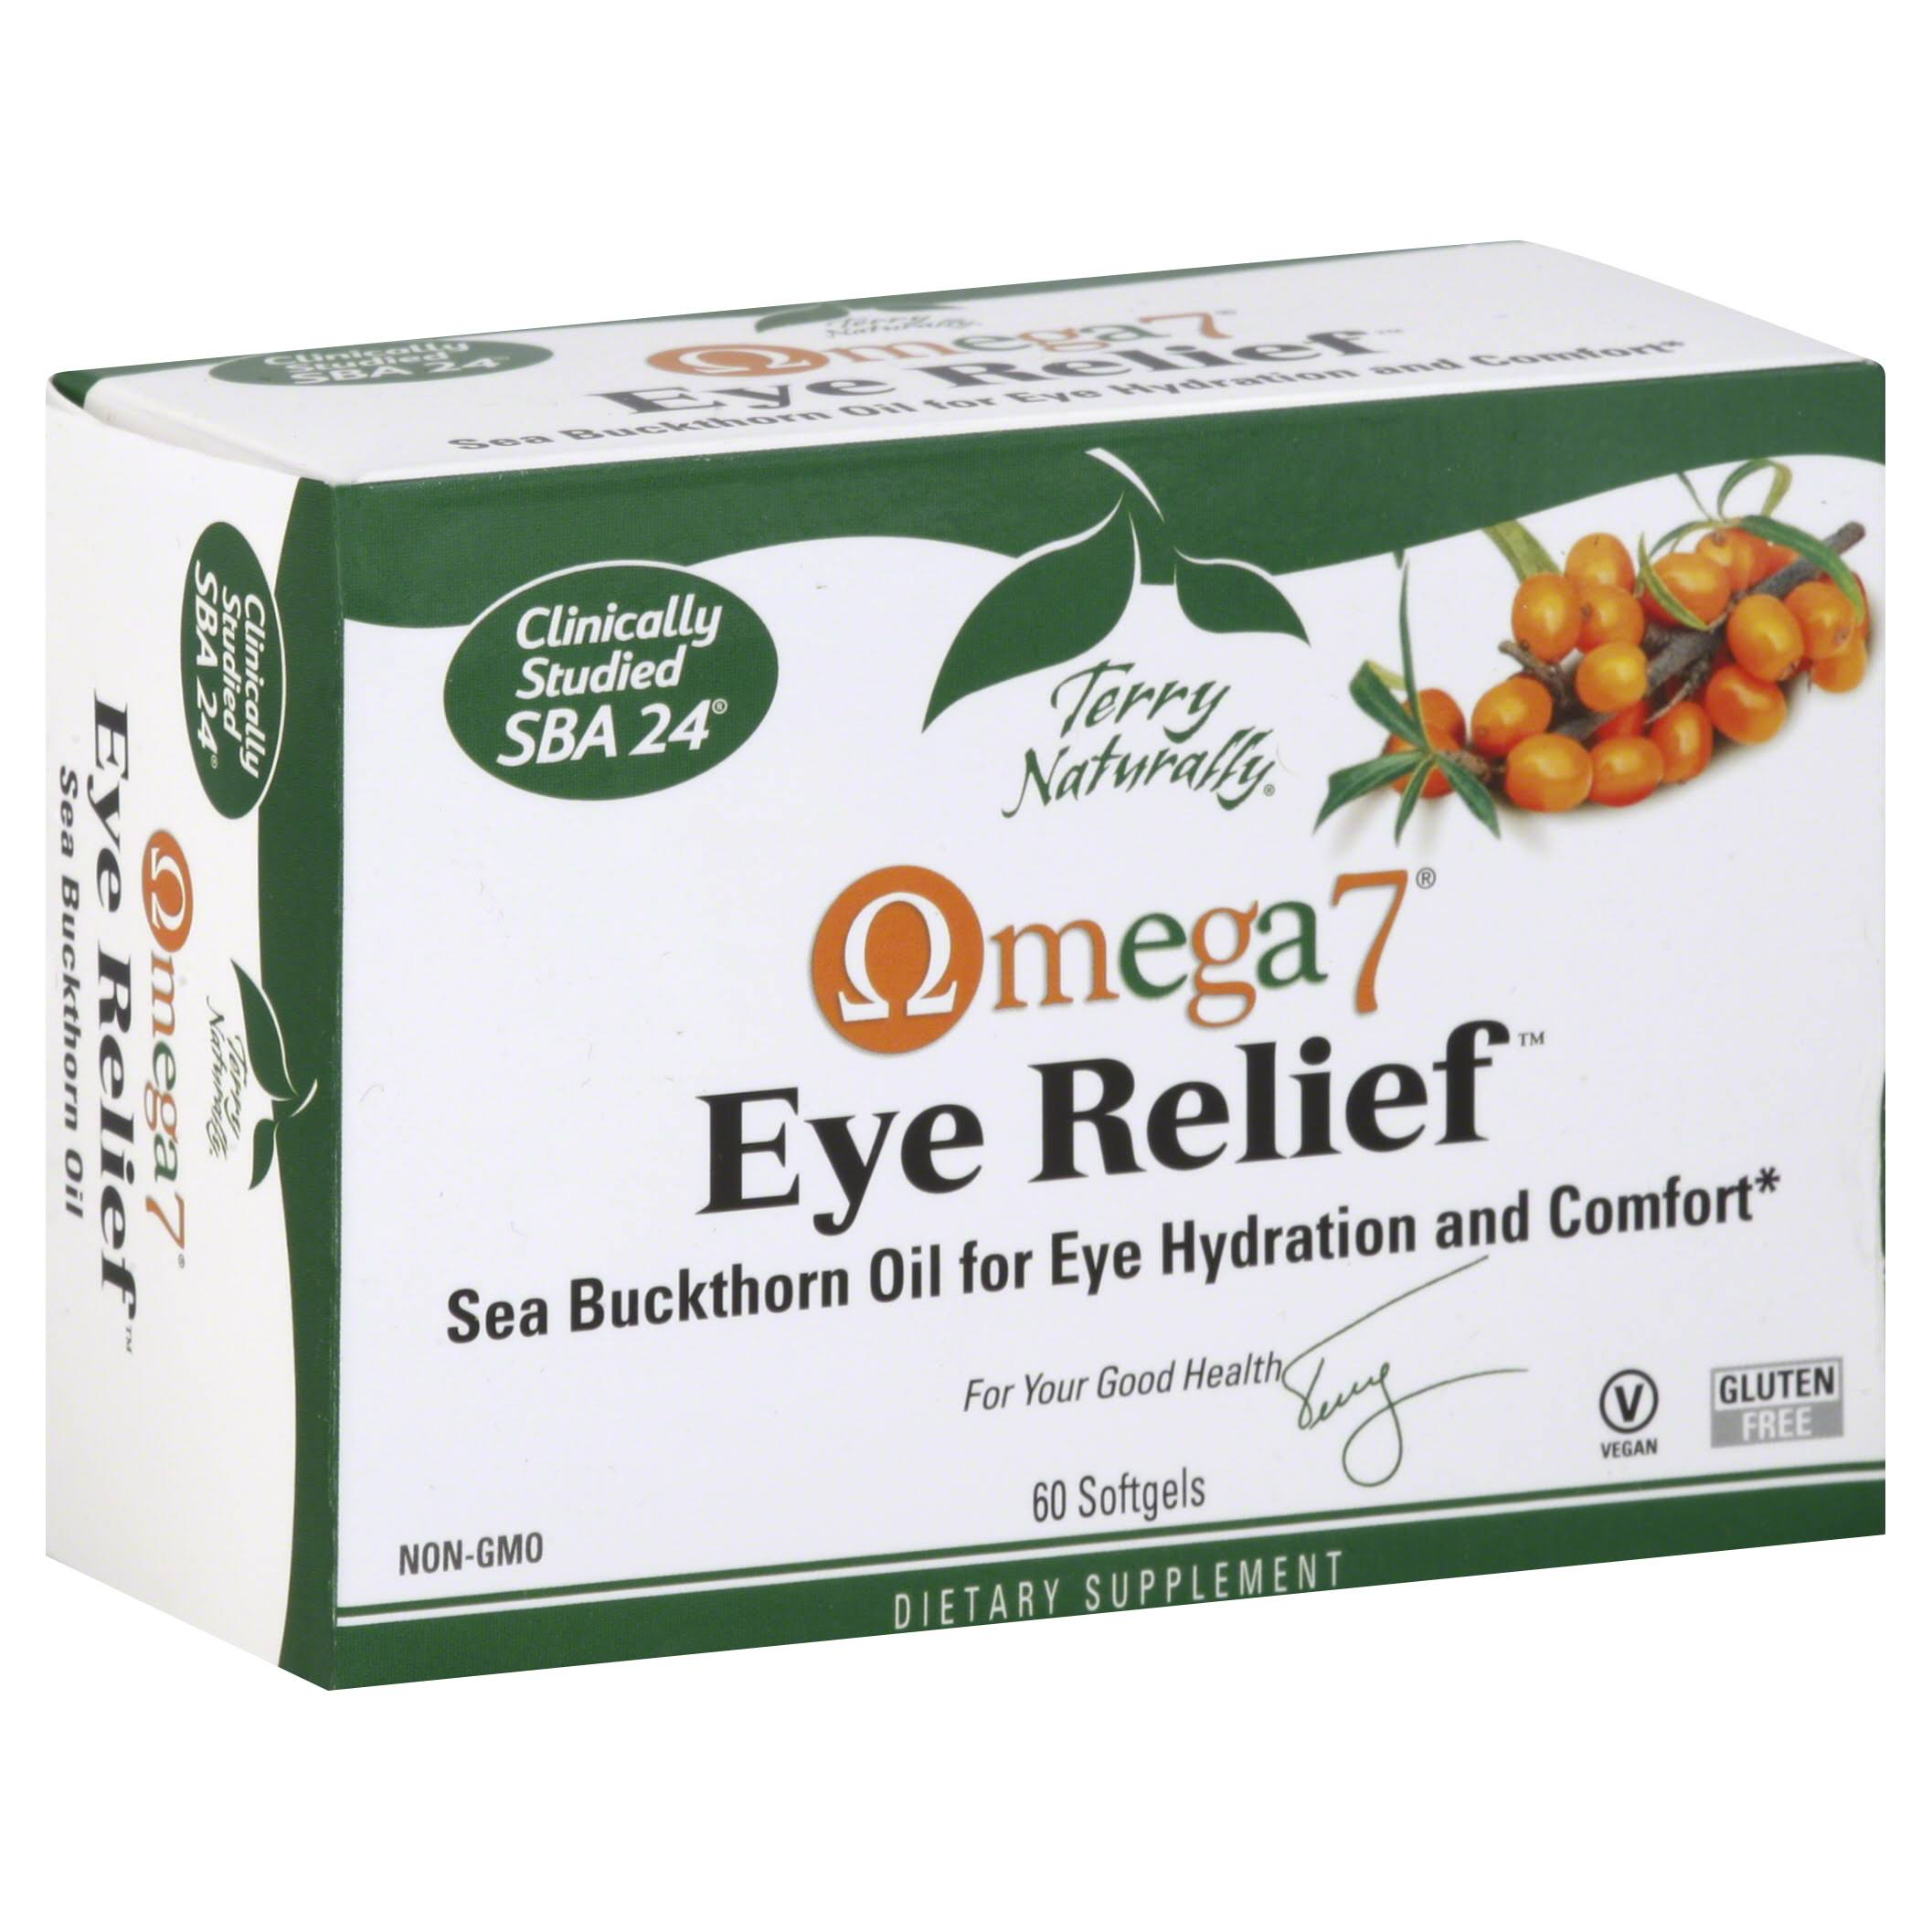 Terry Naturally Omega7 Eye Relief - 60 Softgels